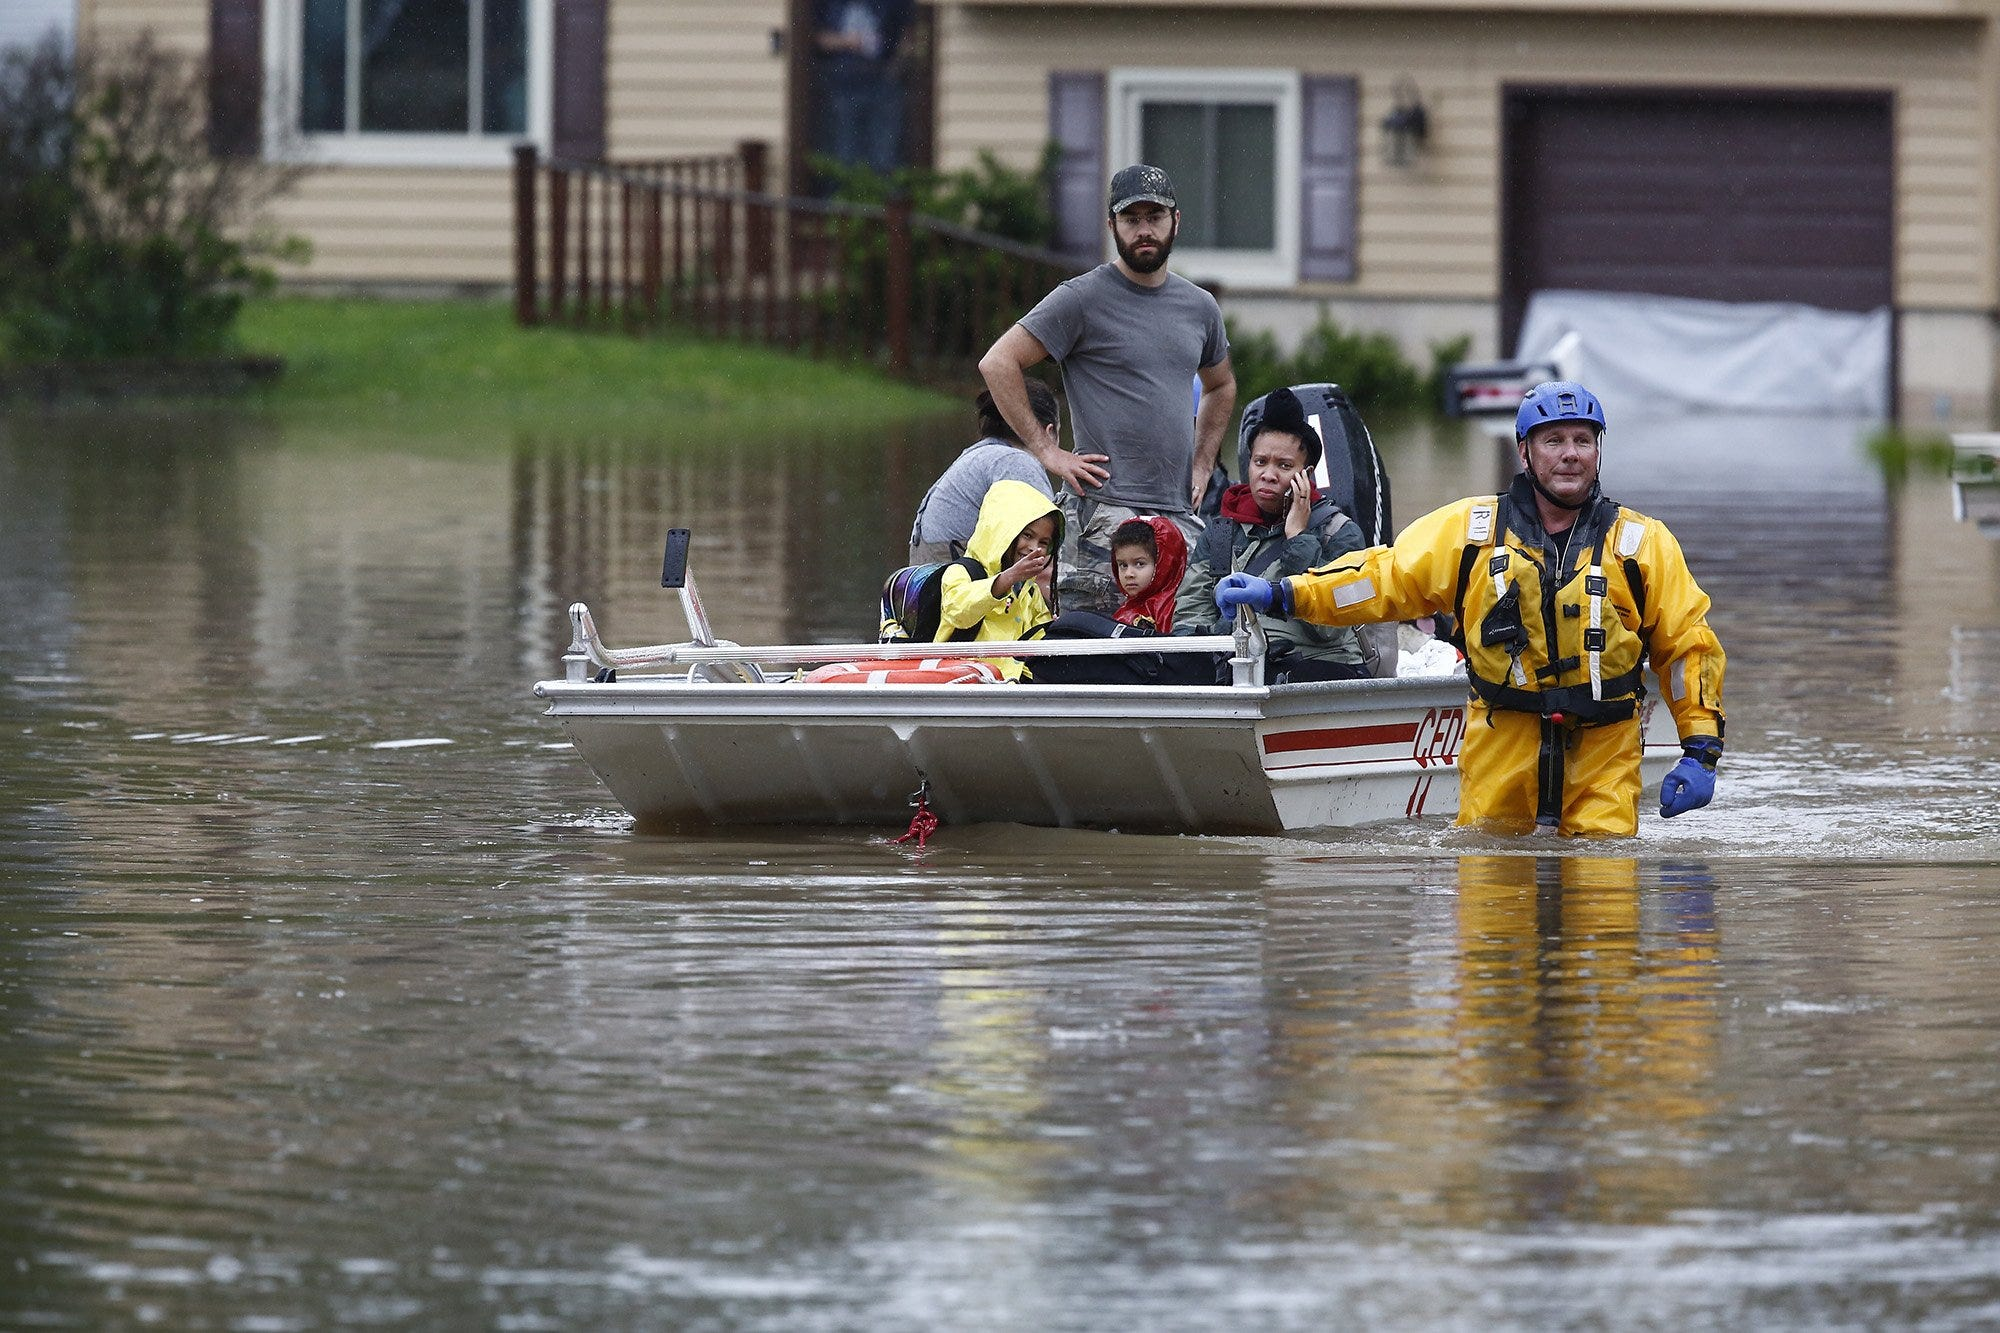 The Columbus Fire Department uses a boat to evacuate people from their homes on Stoneshead Ct. on Tuesday, May 19, 2020 after heavy rains pounded the area overnight.